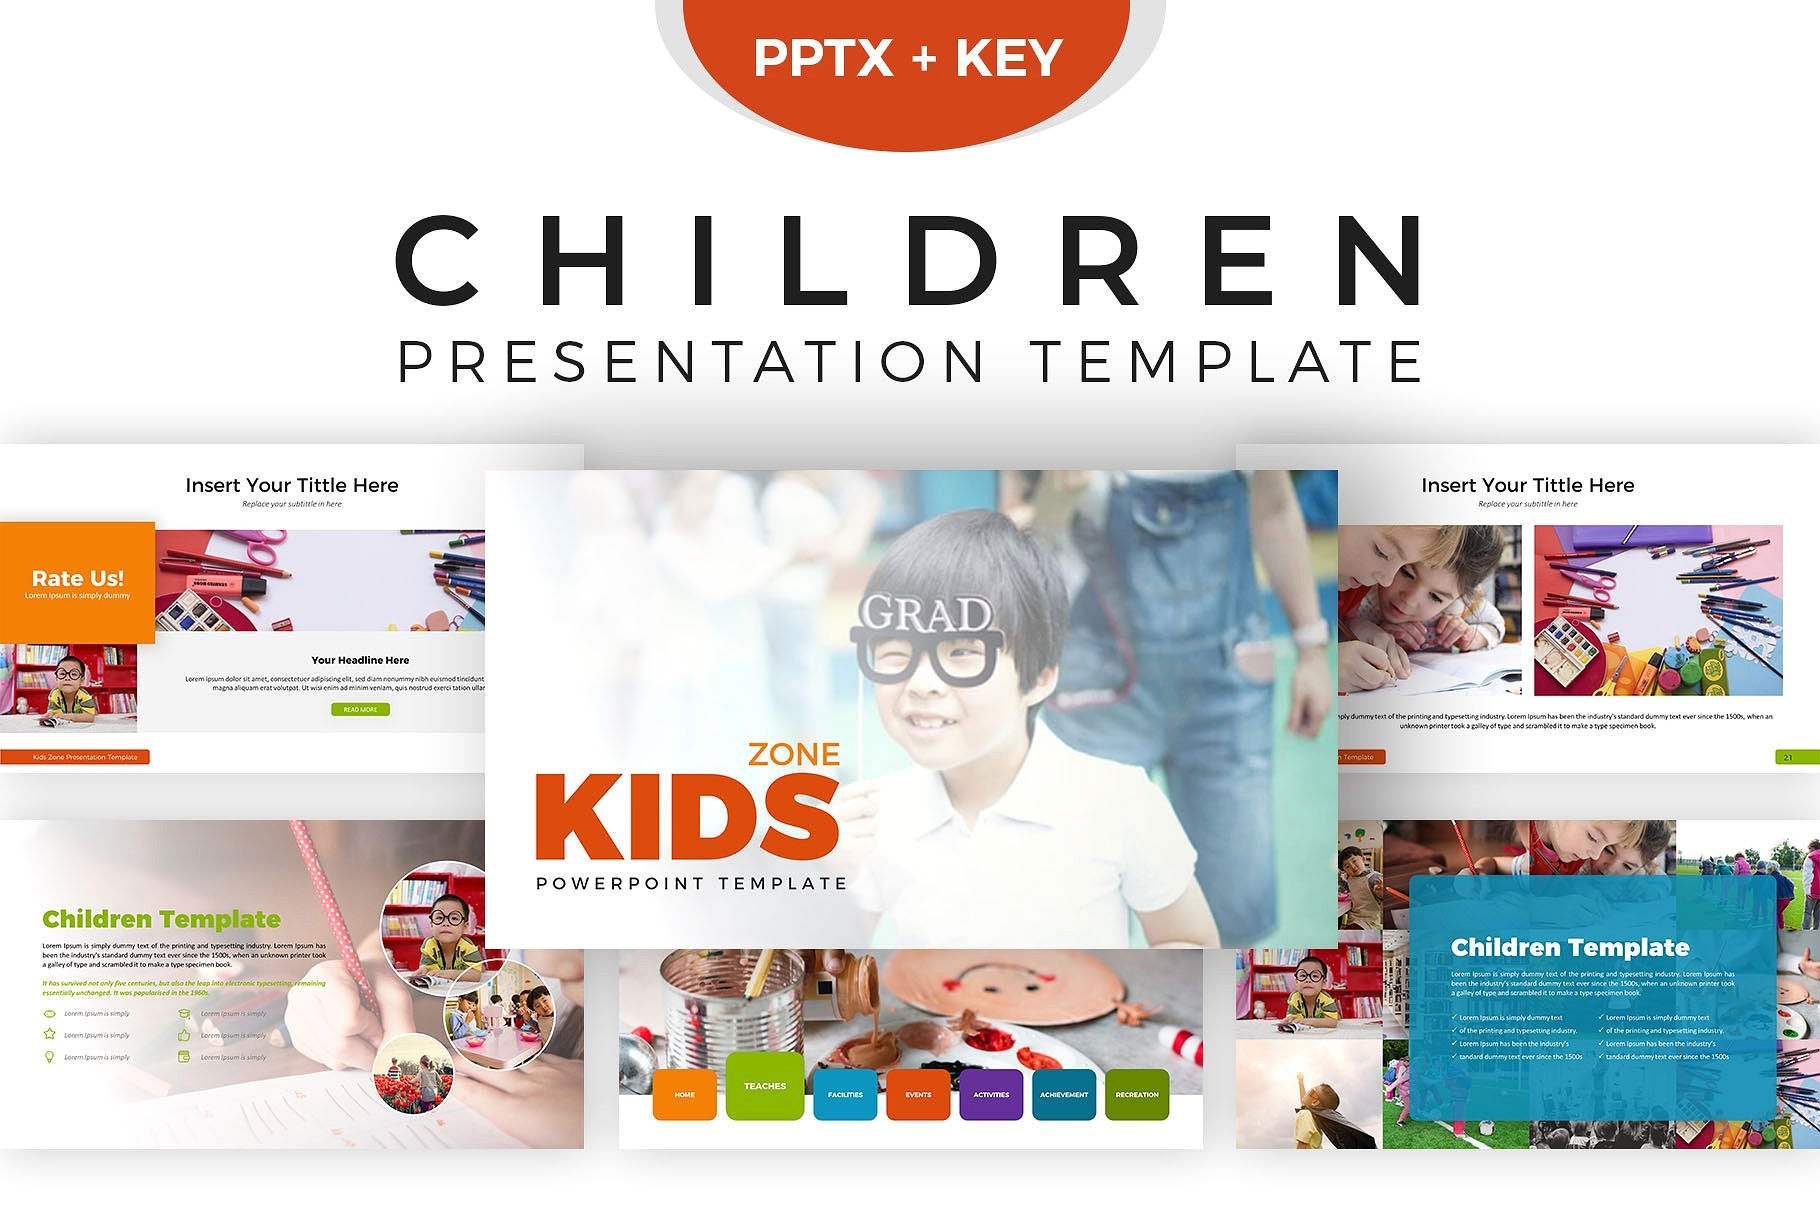 Children-Presentation-Template-1.jpg